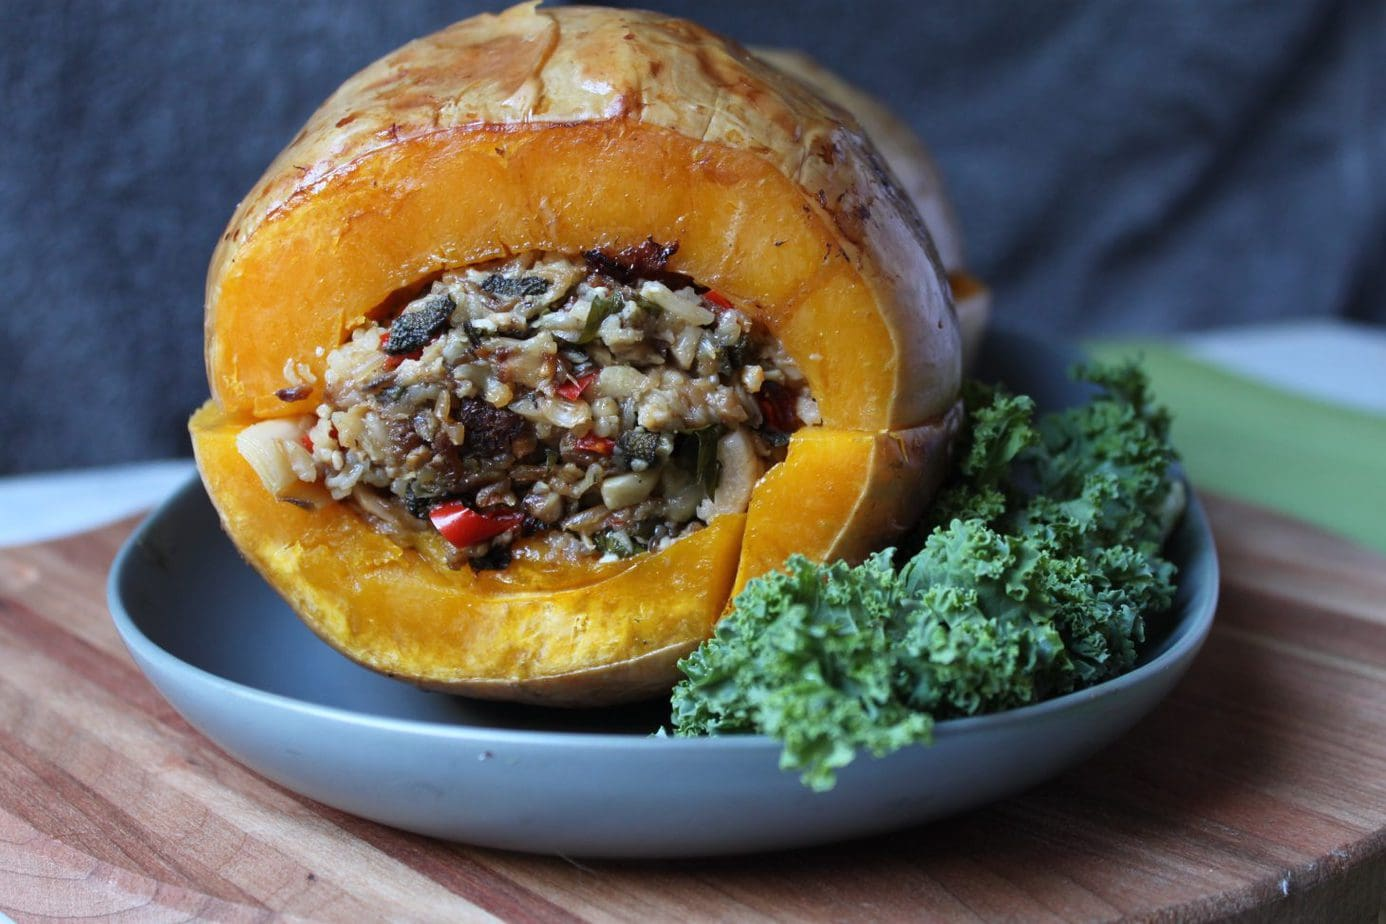 This entire stuffed and roasted butternut squash makes a great holiday side dish or main dish for vegans and vegetarians. Delicious and meant to mimic the famous turducken at your holiday table. #vegan #vegetarian #sides #veggiedukken